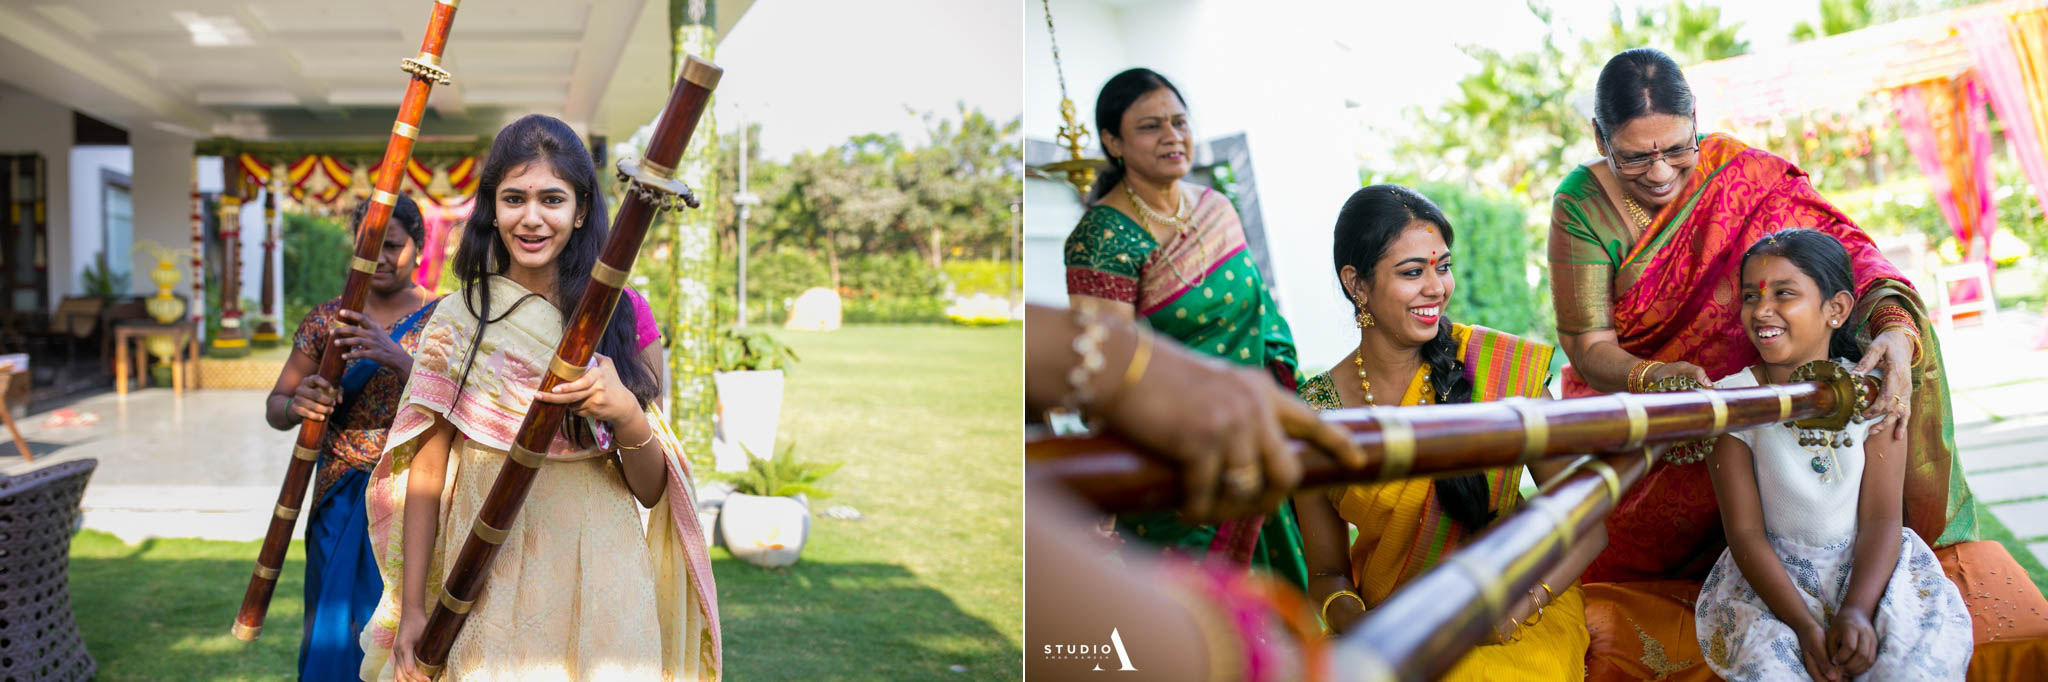 Destination-Wedding-photography-chennai-4